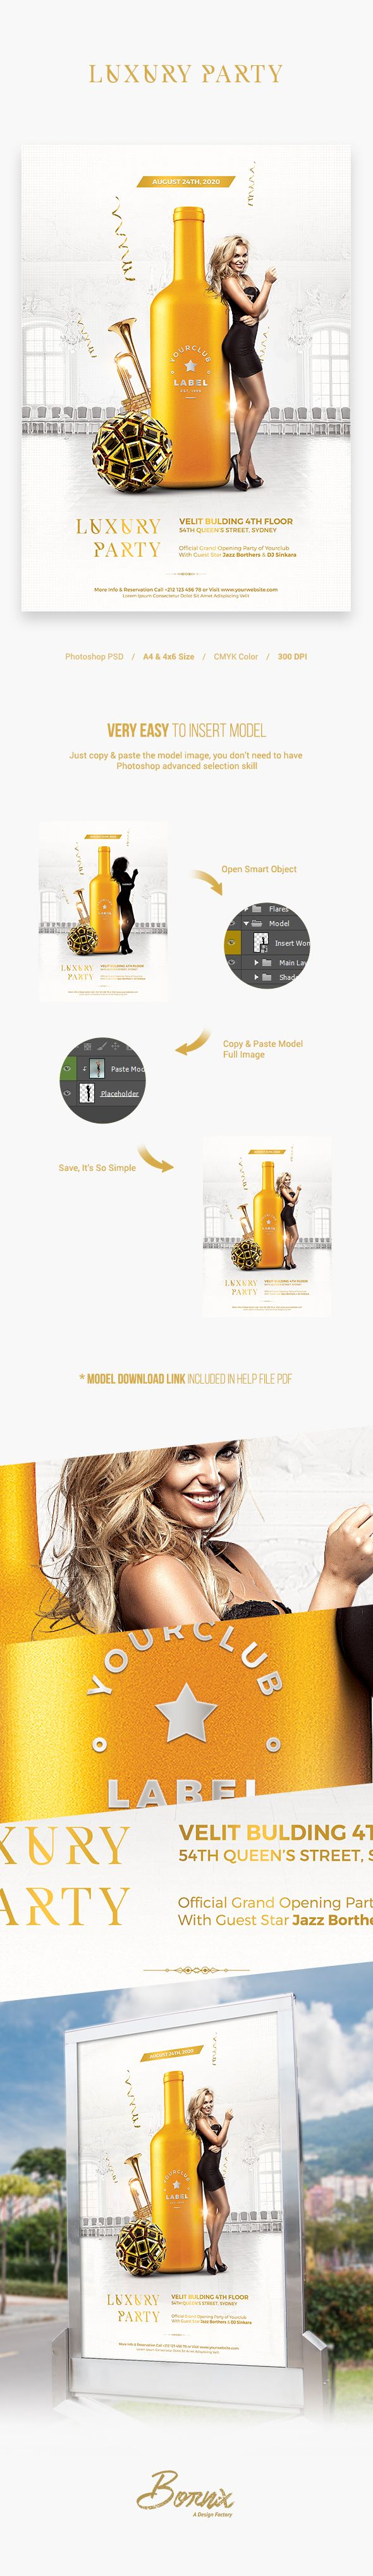 Luxury party flyer template with elegant & classy design, perfect to promote your party or any club event.Editable and very easy to use.You can insert your club label/logo on the bottle easily via Smart Object layer.Available in 2 formats, A4 & 4×6 flyer with bleed in each side. #graphicriver #envato #market #creative #flyer #poster #advertisement #template #photoshop #psd #download #event #party #mockup #logo #label #mock-up